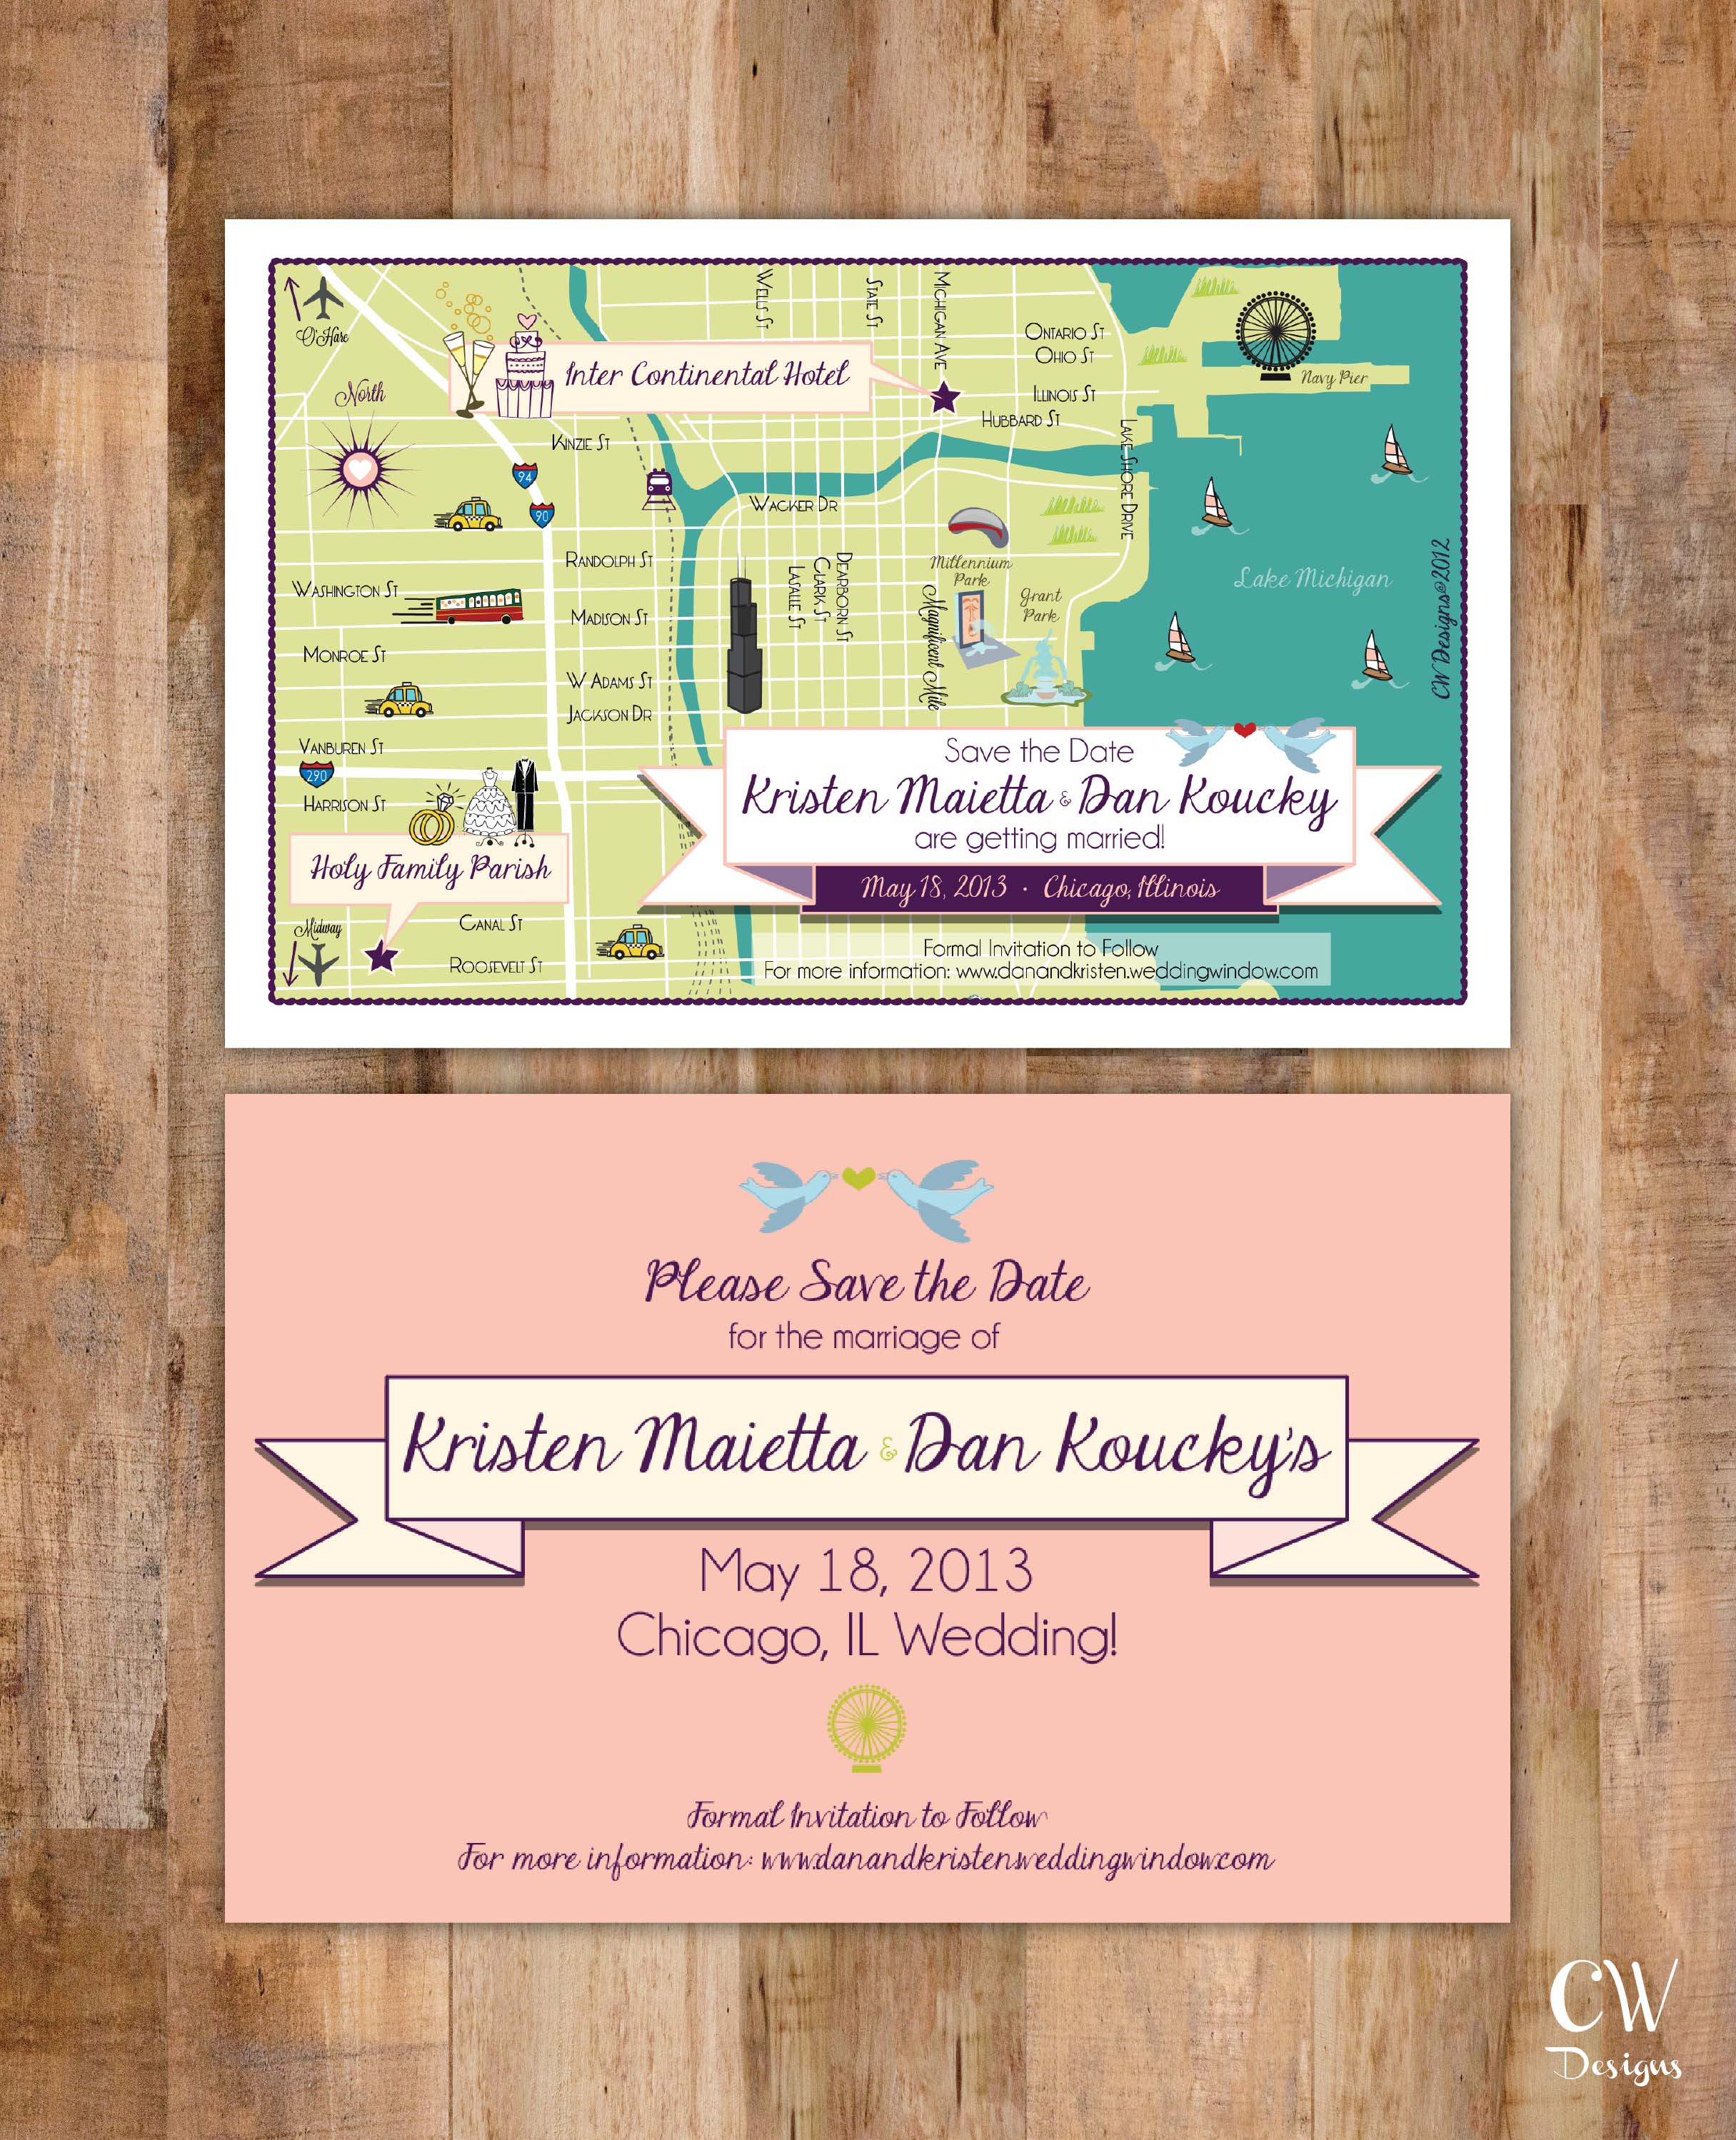 Chicago City Wedding Map Save the Date.jpg